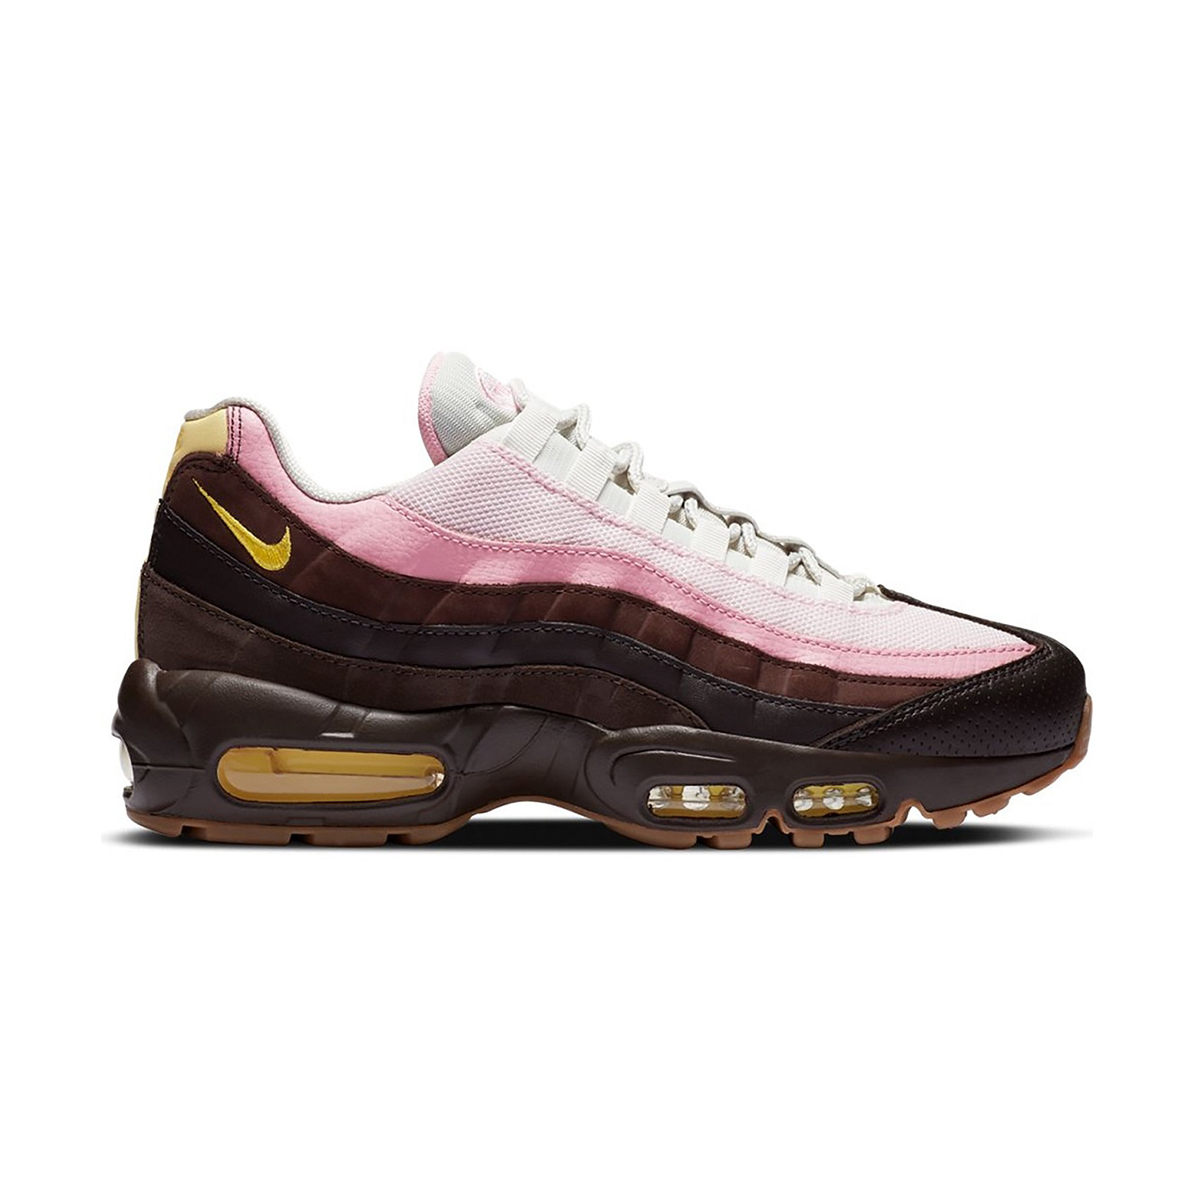 Primary image for Nike Women's Air Max 95 (Cuban Links/ Velvet Brown/ Pink/ Tan) US Sizes 5-10